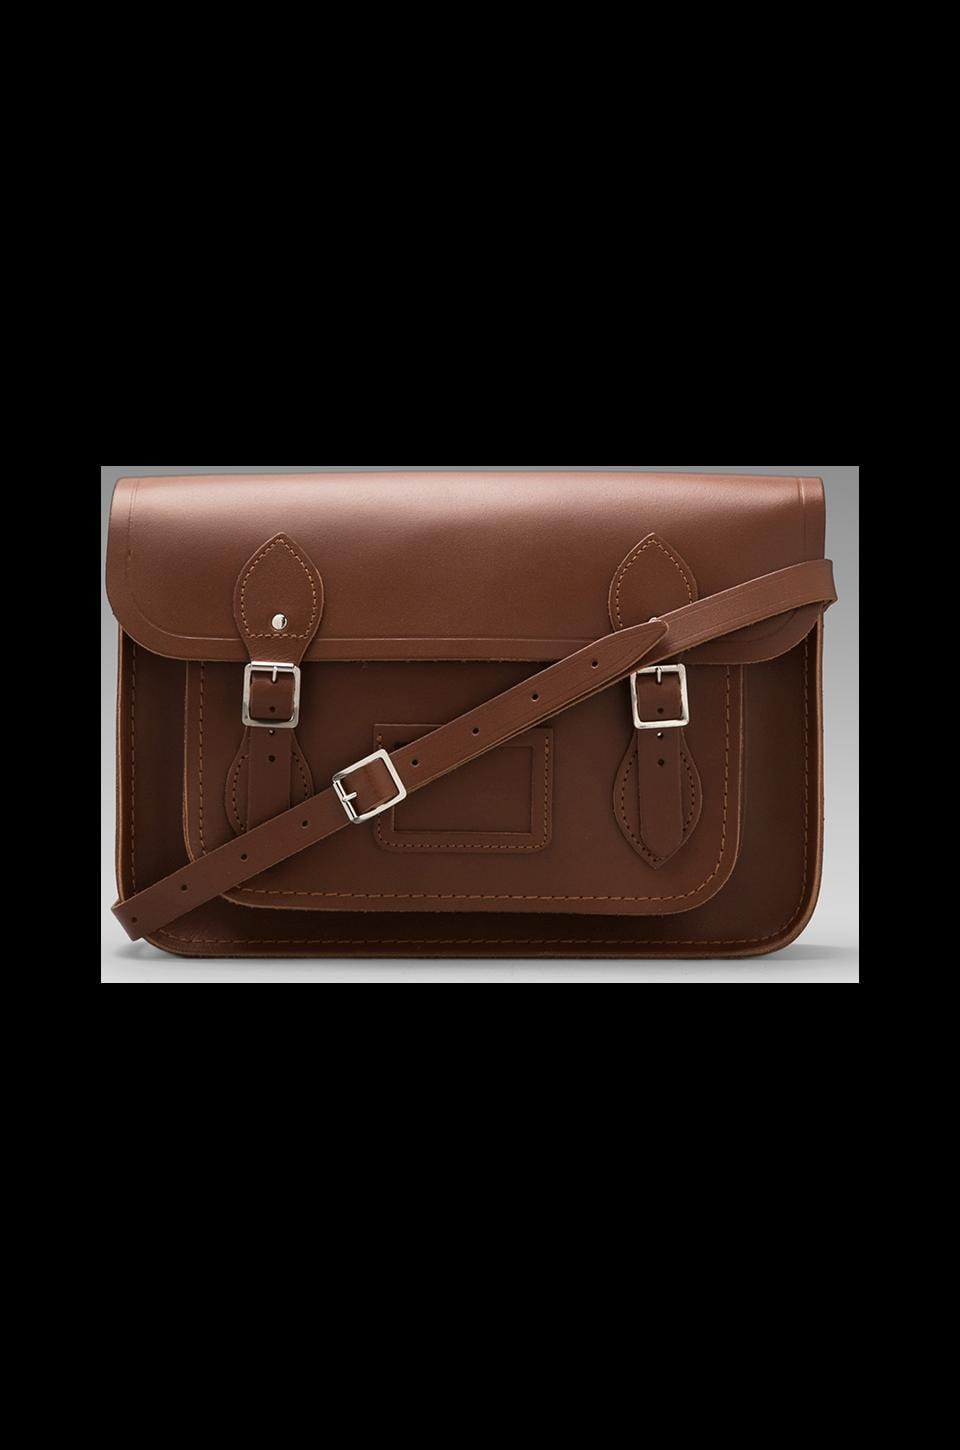 The Cambridge Satchel Company Core Collection 13'' Satchel in Vintage